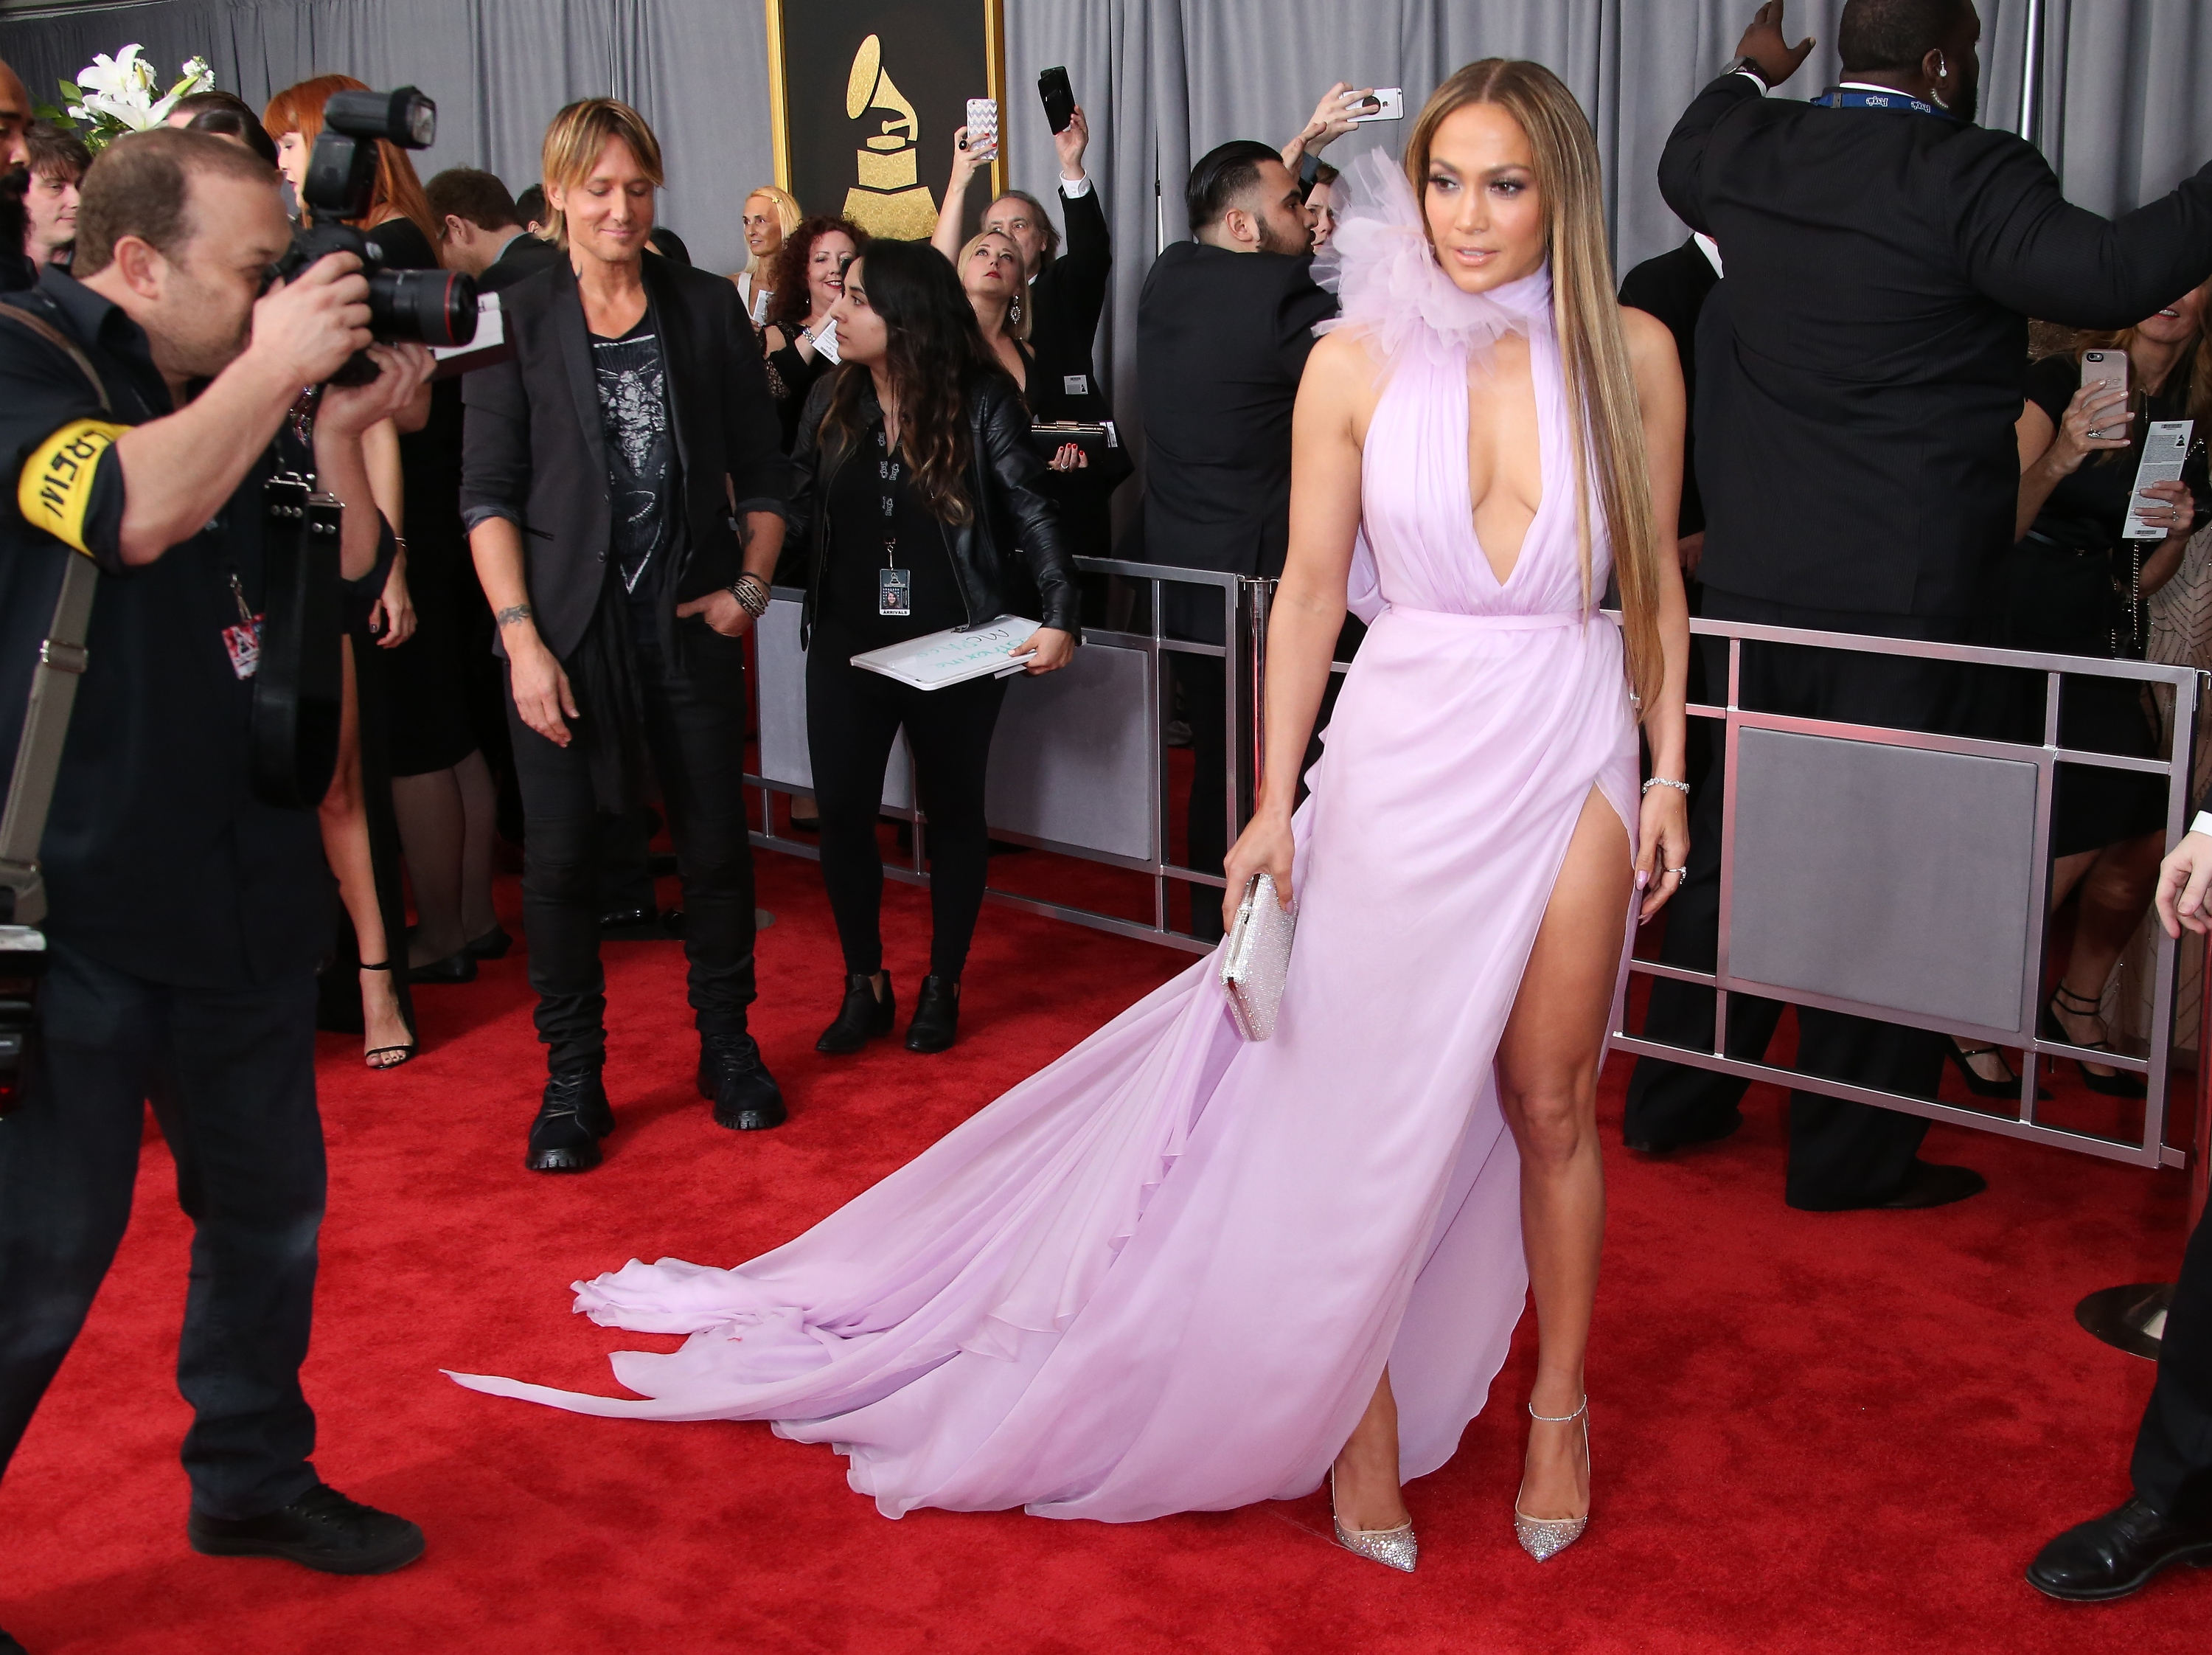 dd1e874769f22 What Celebrities Wear Under Those Red Carpet Dresses - Racked